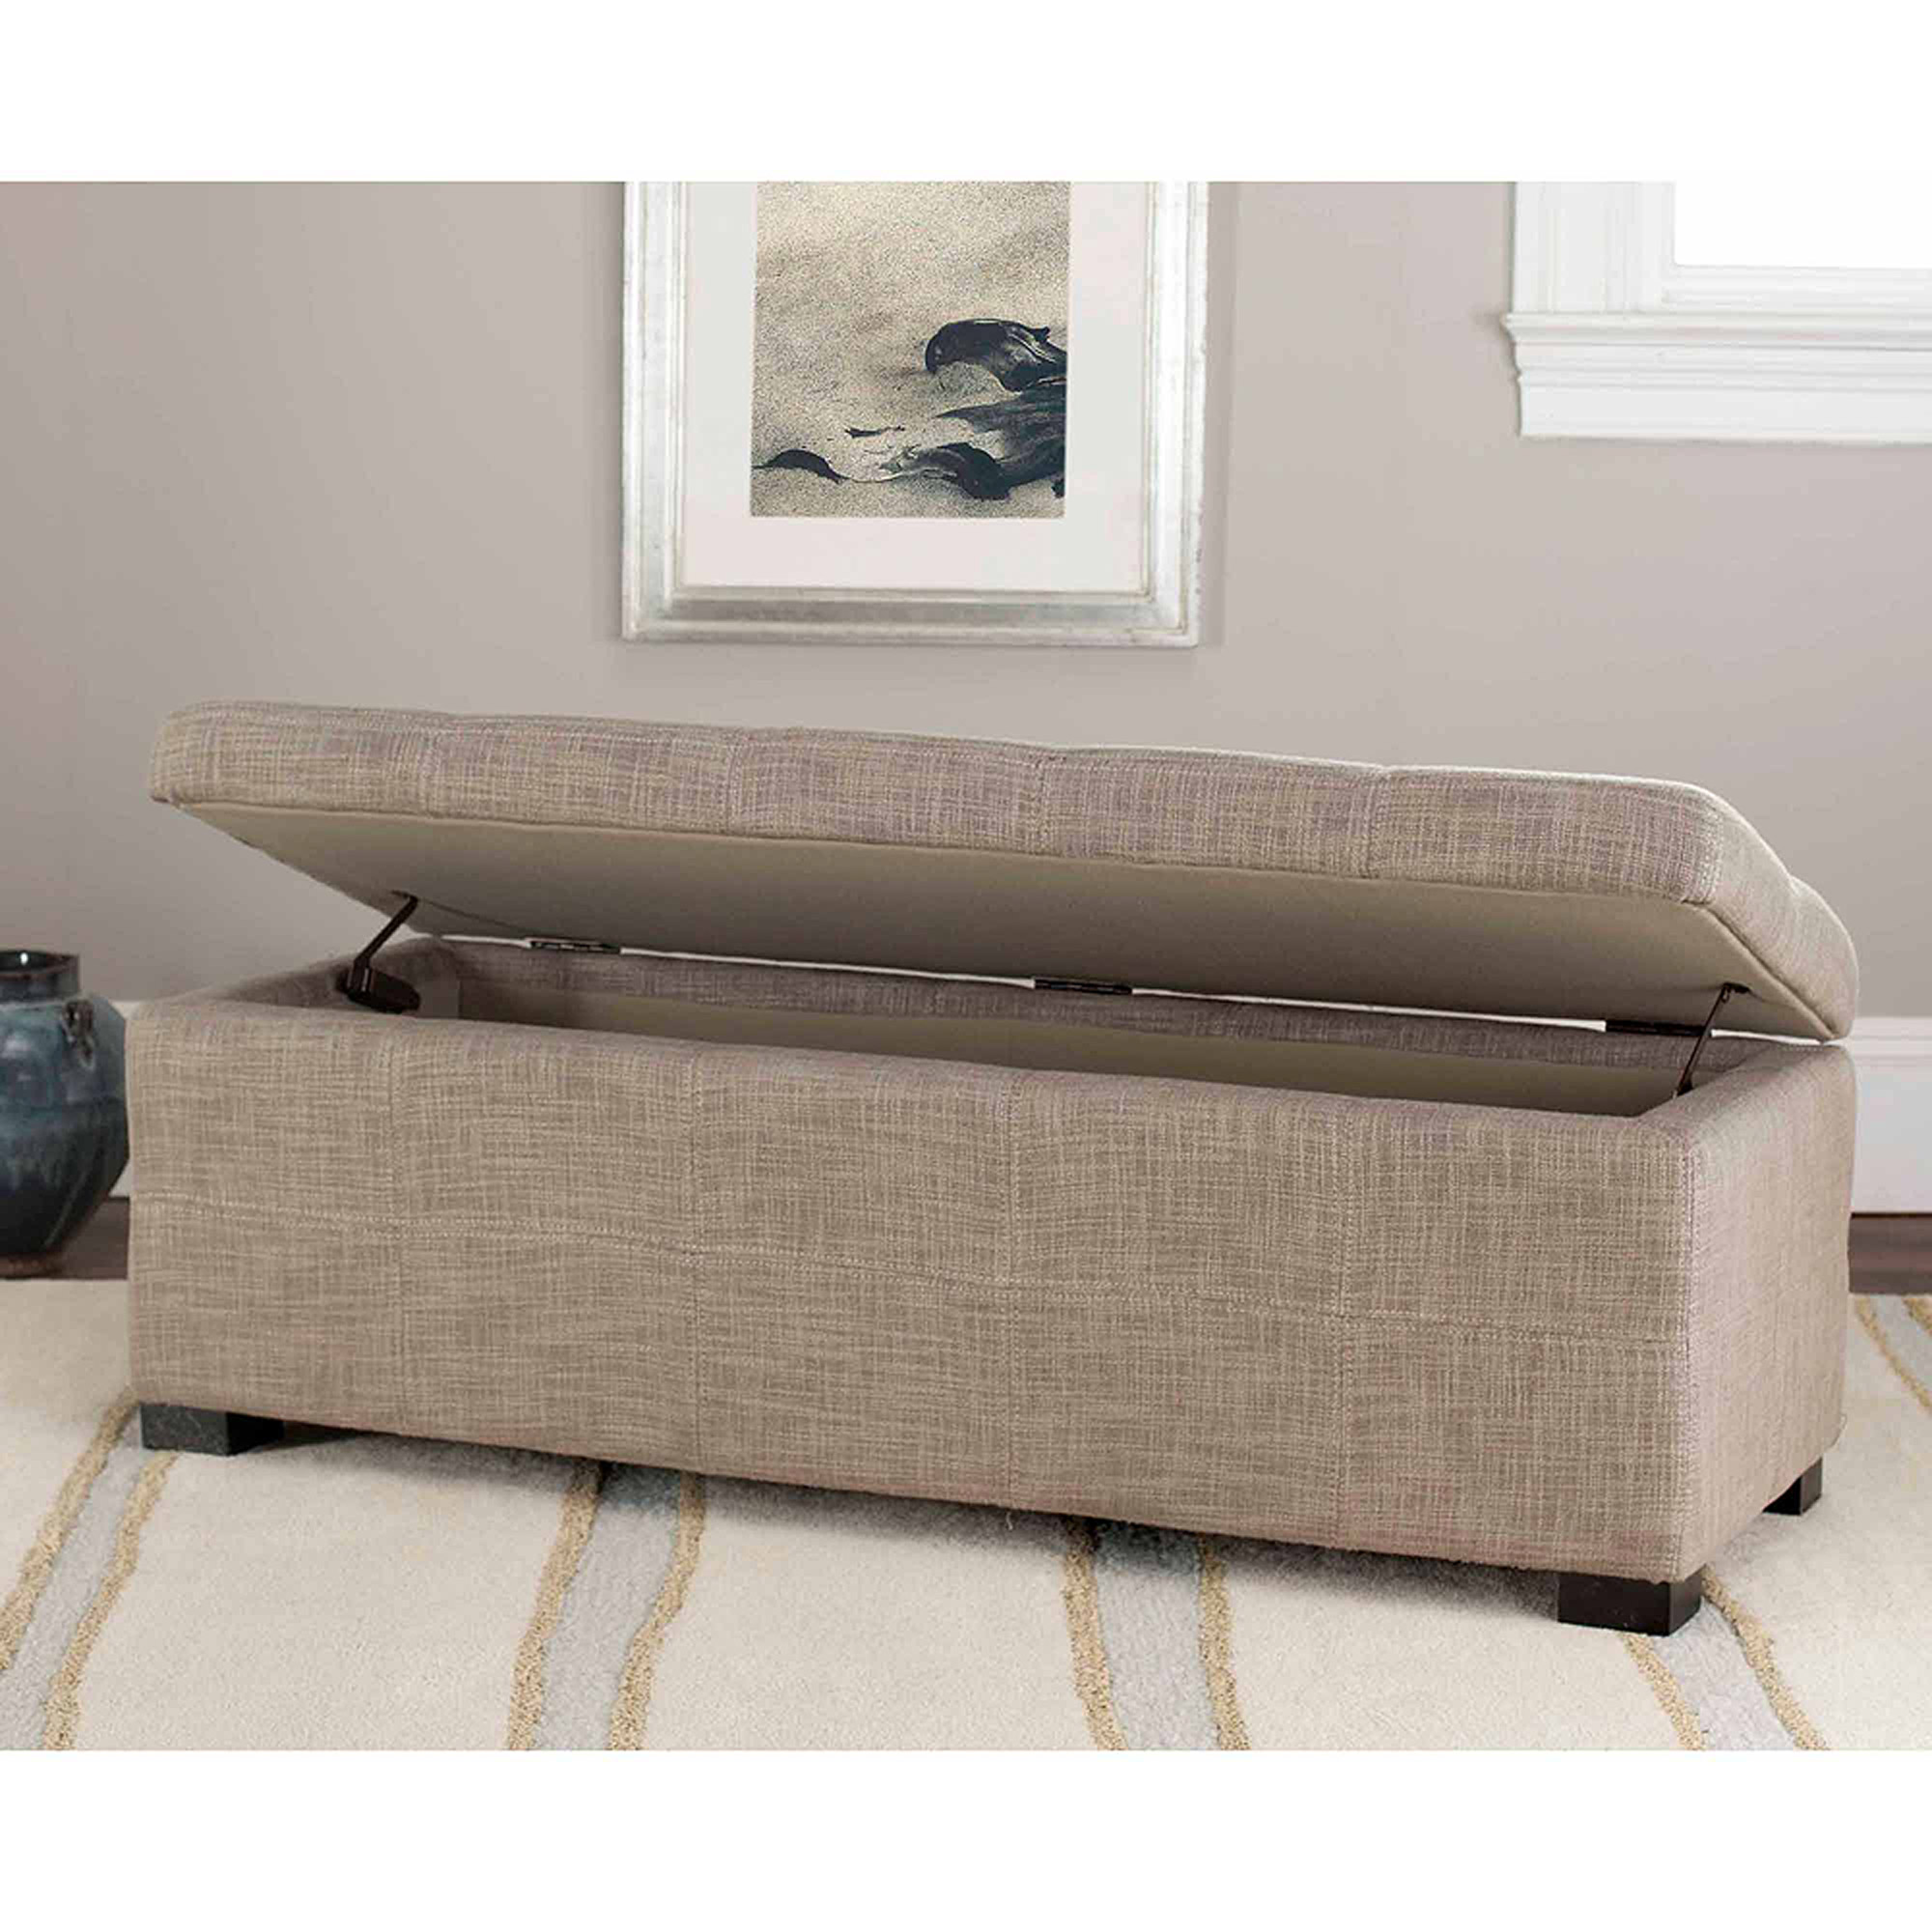 Safavieh Madison Large Storage Bench, Multiple Colors